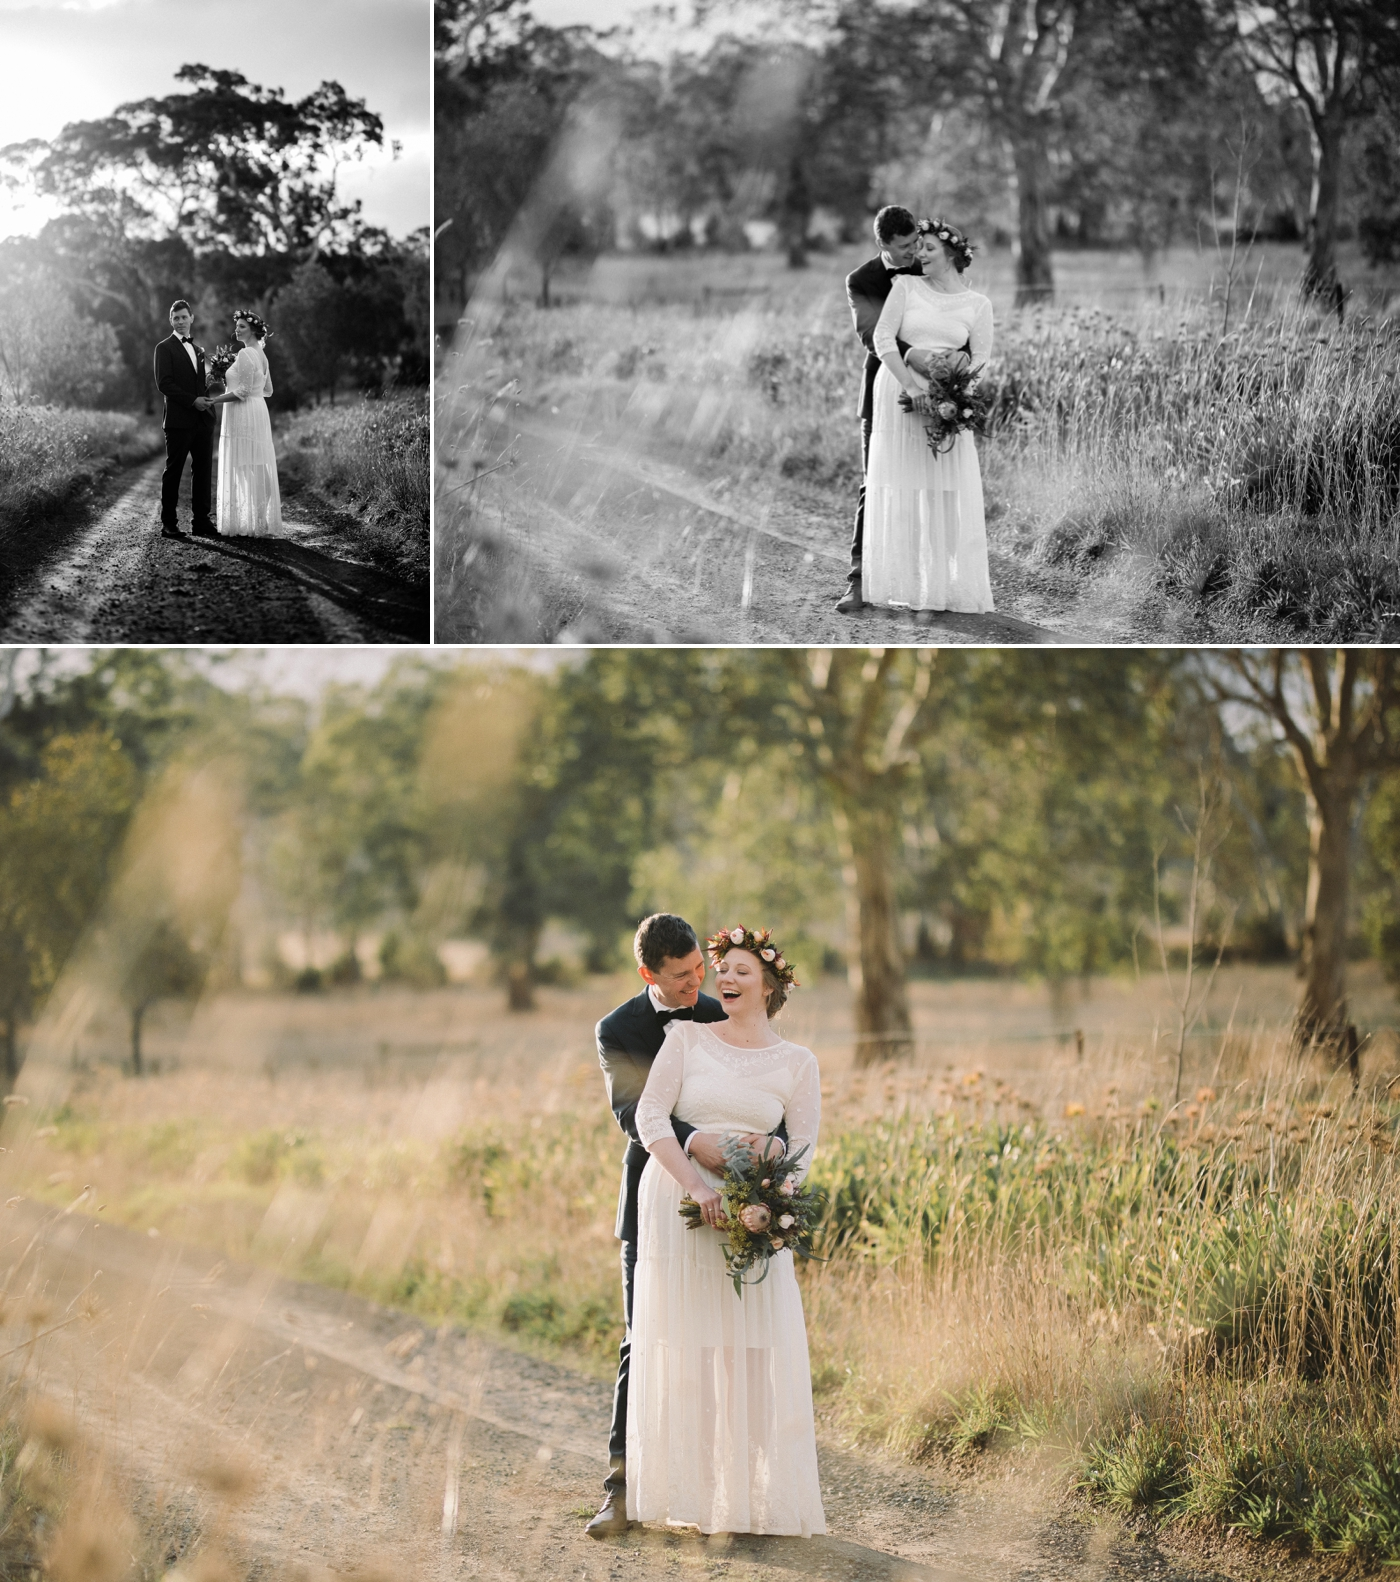 Jo & Aaron - Natural Wedding Photography in Adelaide - Beautiful, modern wedding photographer - Al Ru Farm Wedding Photography - Katherine Schultz_0030.jpg